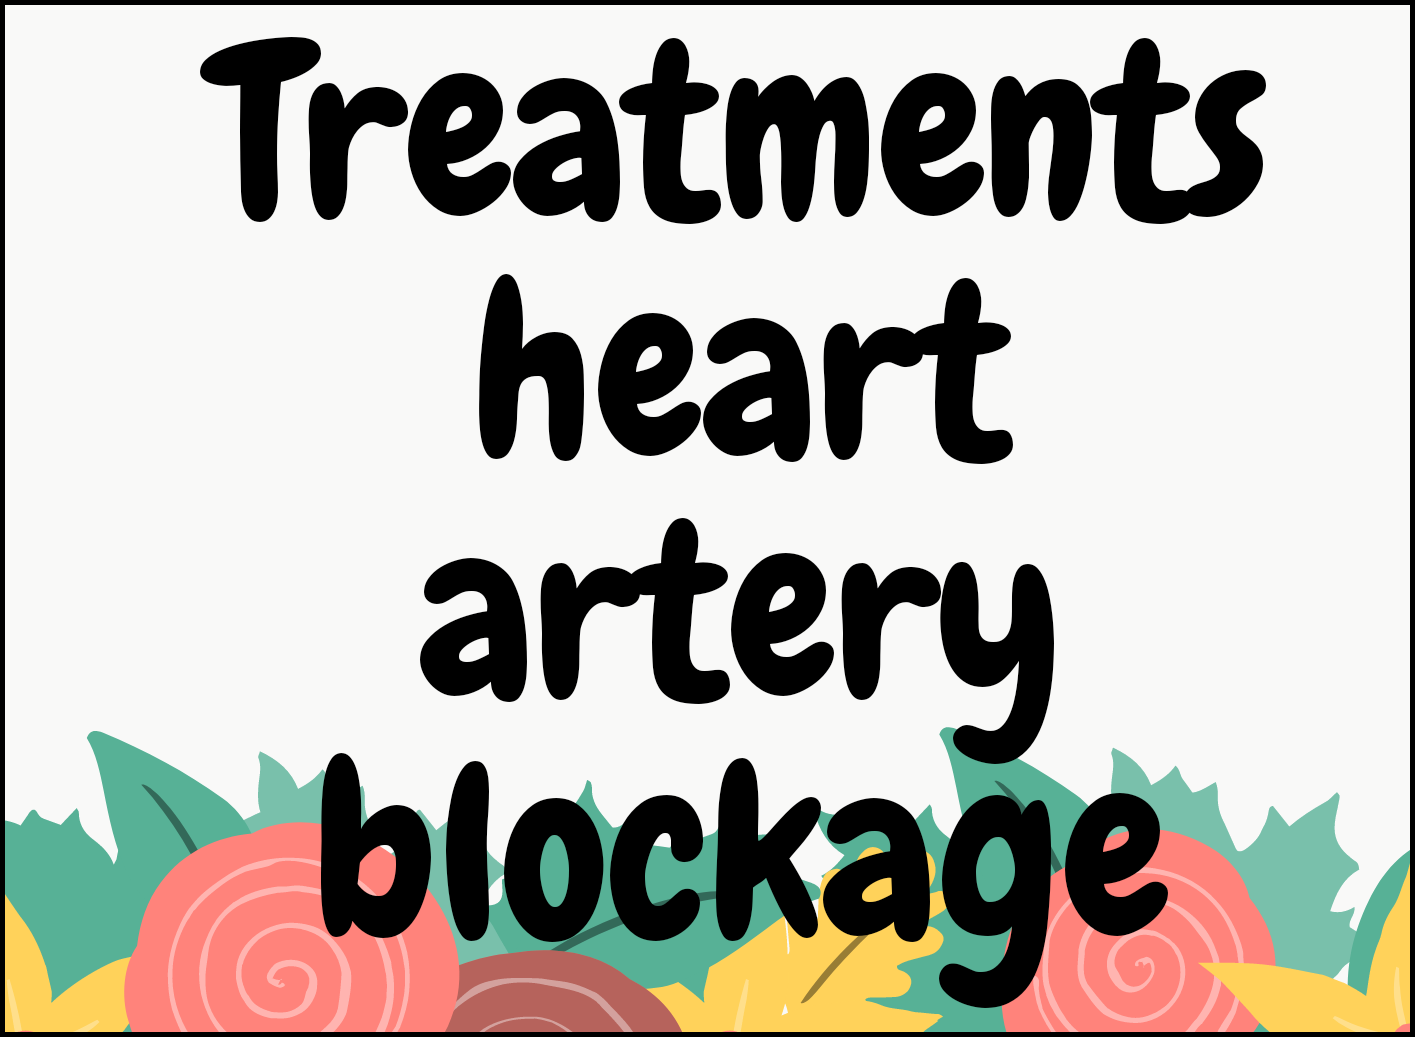 Treatments for heart blockage